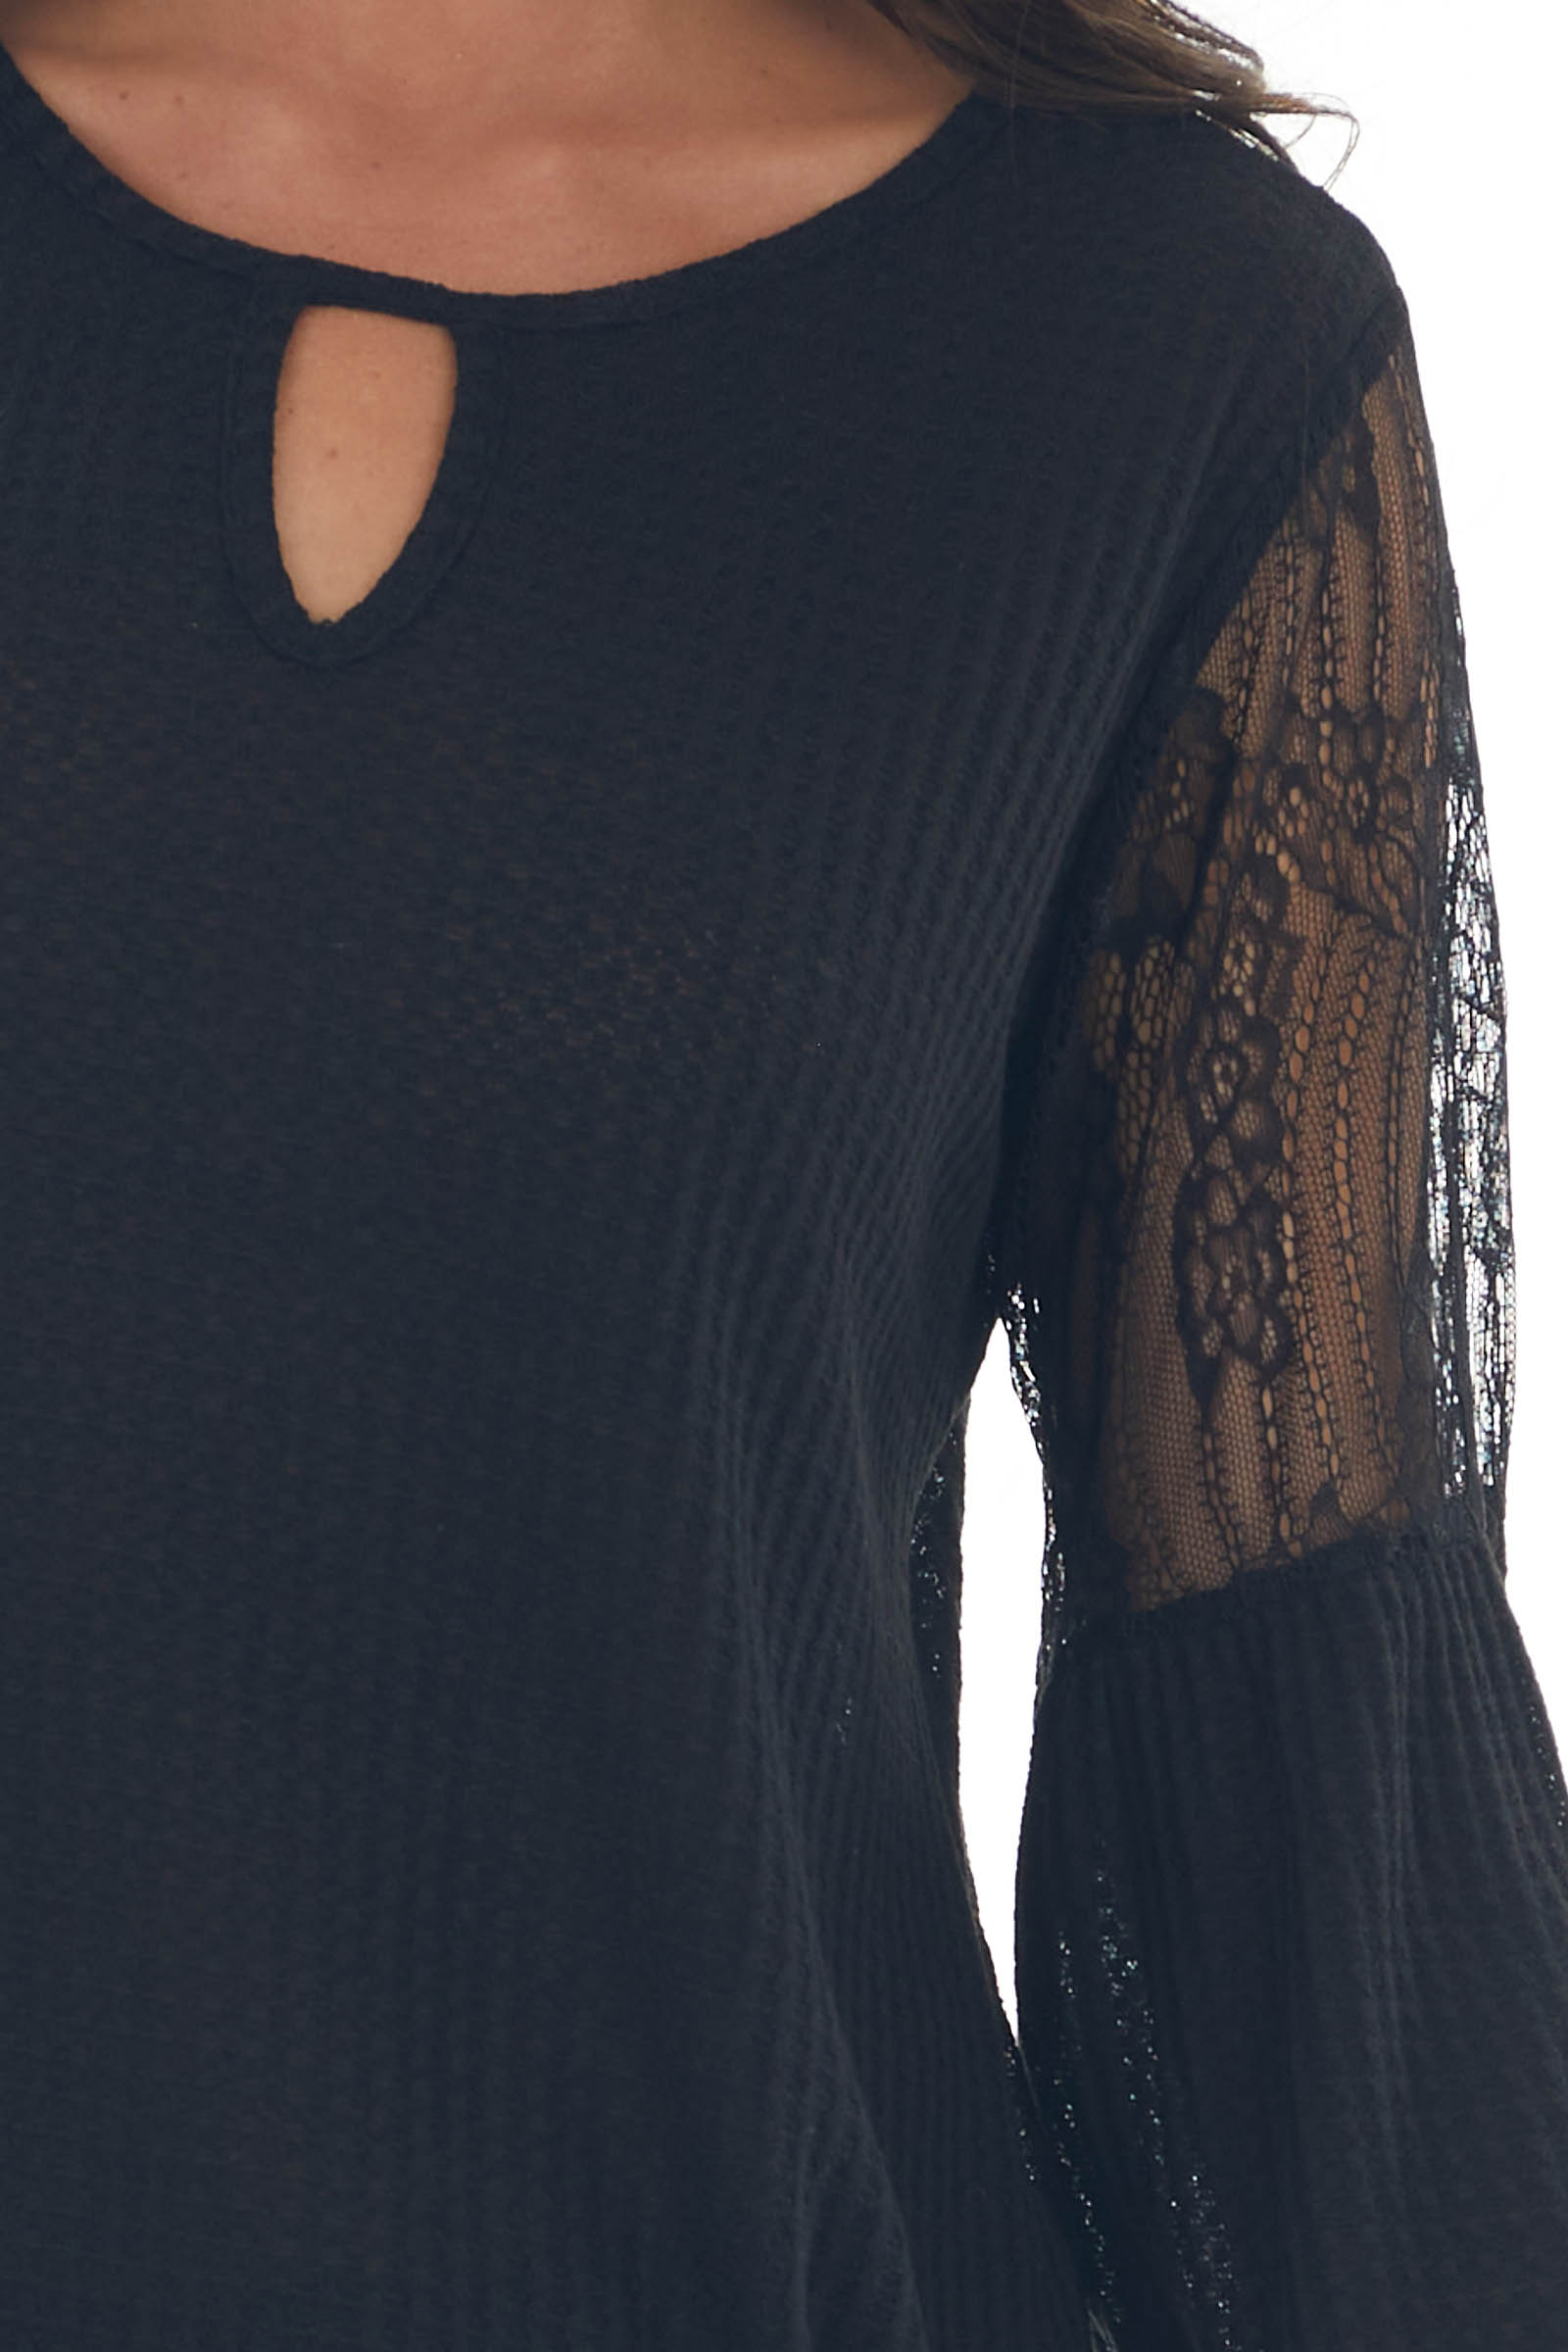 Black Sheer Lace Sleeve Contrast Knit Top